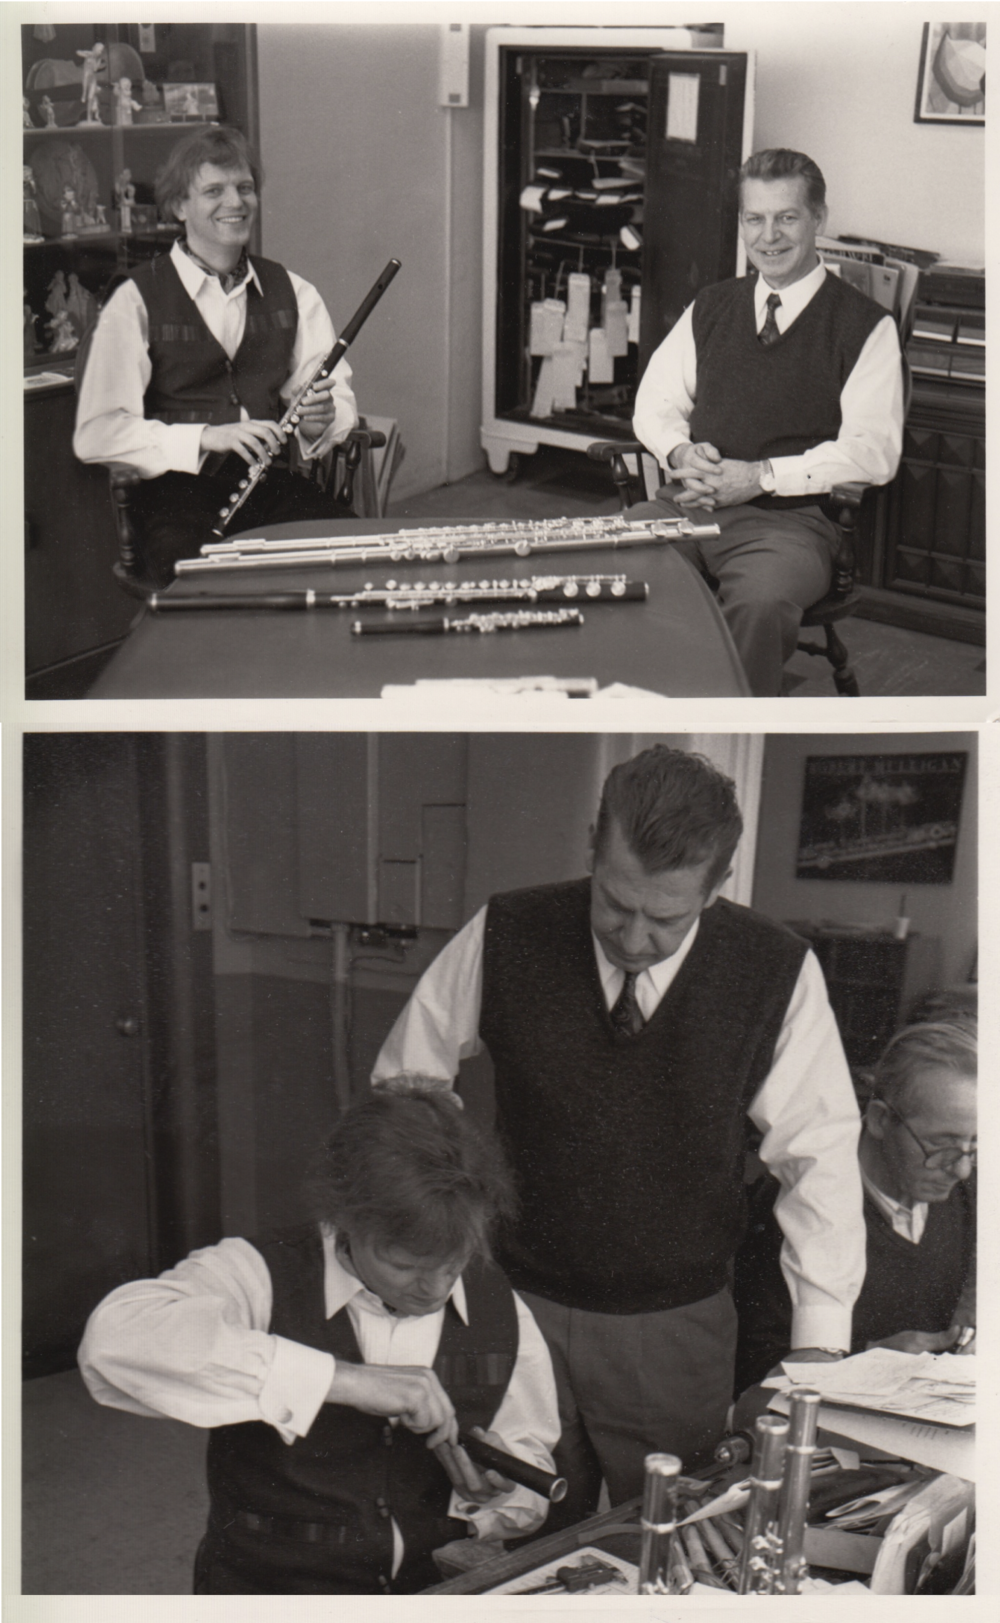 1993 – Lewis Deveau dies, company passes to his widow, Anne Deveau1995 – Anne Deveau dies, company passes to foreman, John C. Fuggetta (known as 'Charlie')1995 – First 14k White Gold Haynes Flute #49950 is produced. 1998 – Collaboration with Jacques Zoon on a wooden flute begins, a limited number were produced. (Jacques pictured with John Fuggetta.)2001 – John C. Fuggetta dies - the Fuggetta family continues to operate the company. -